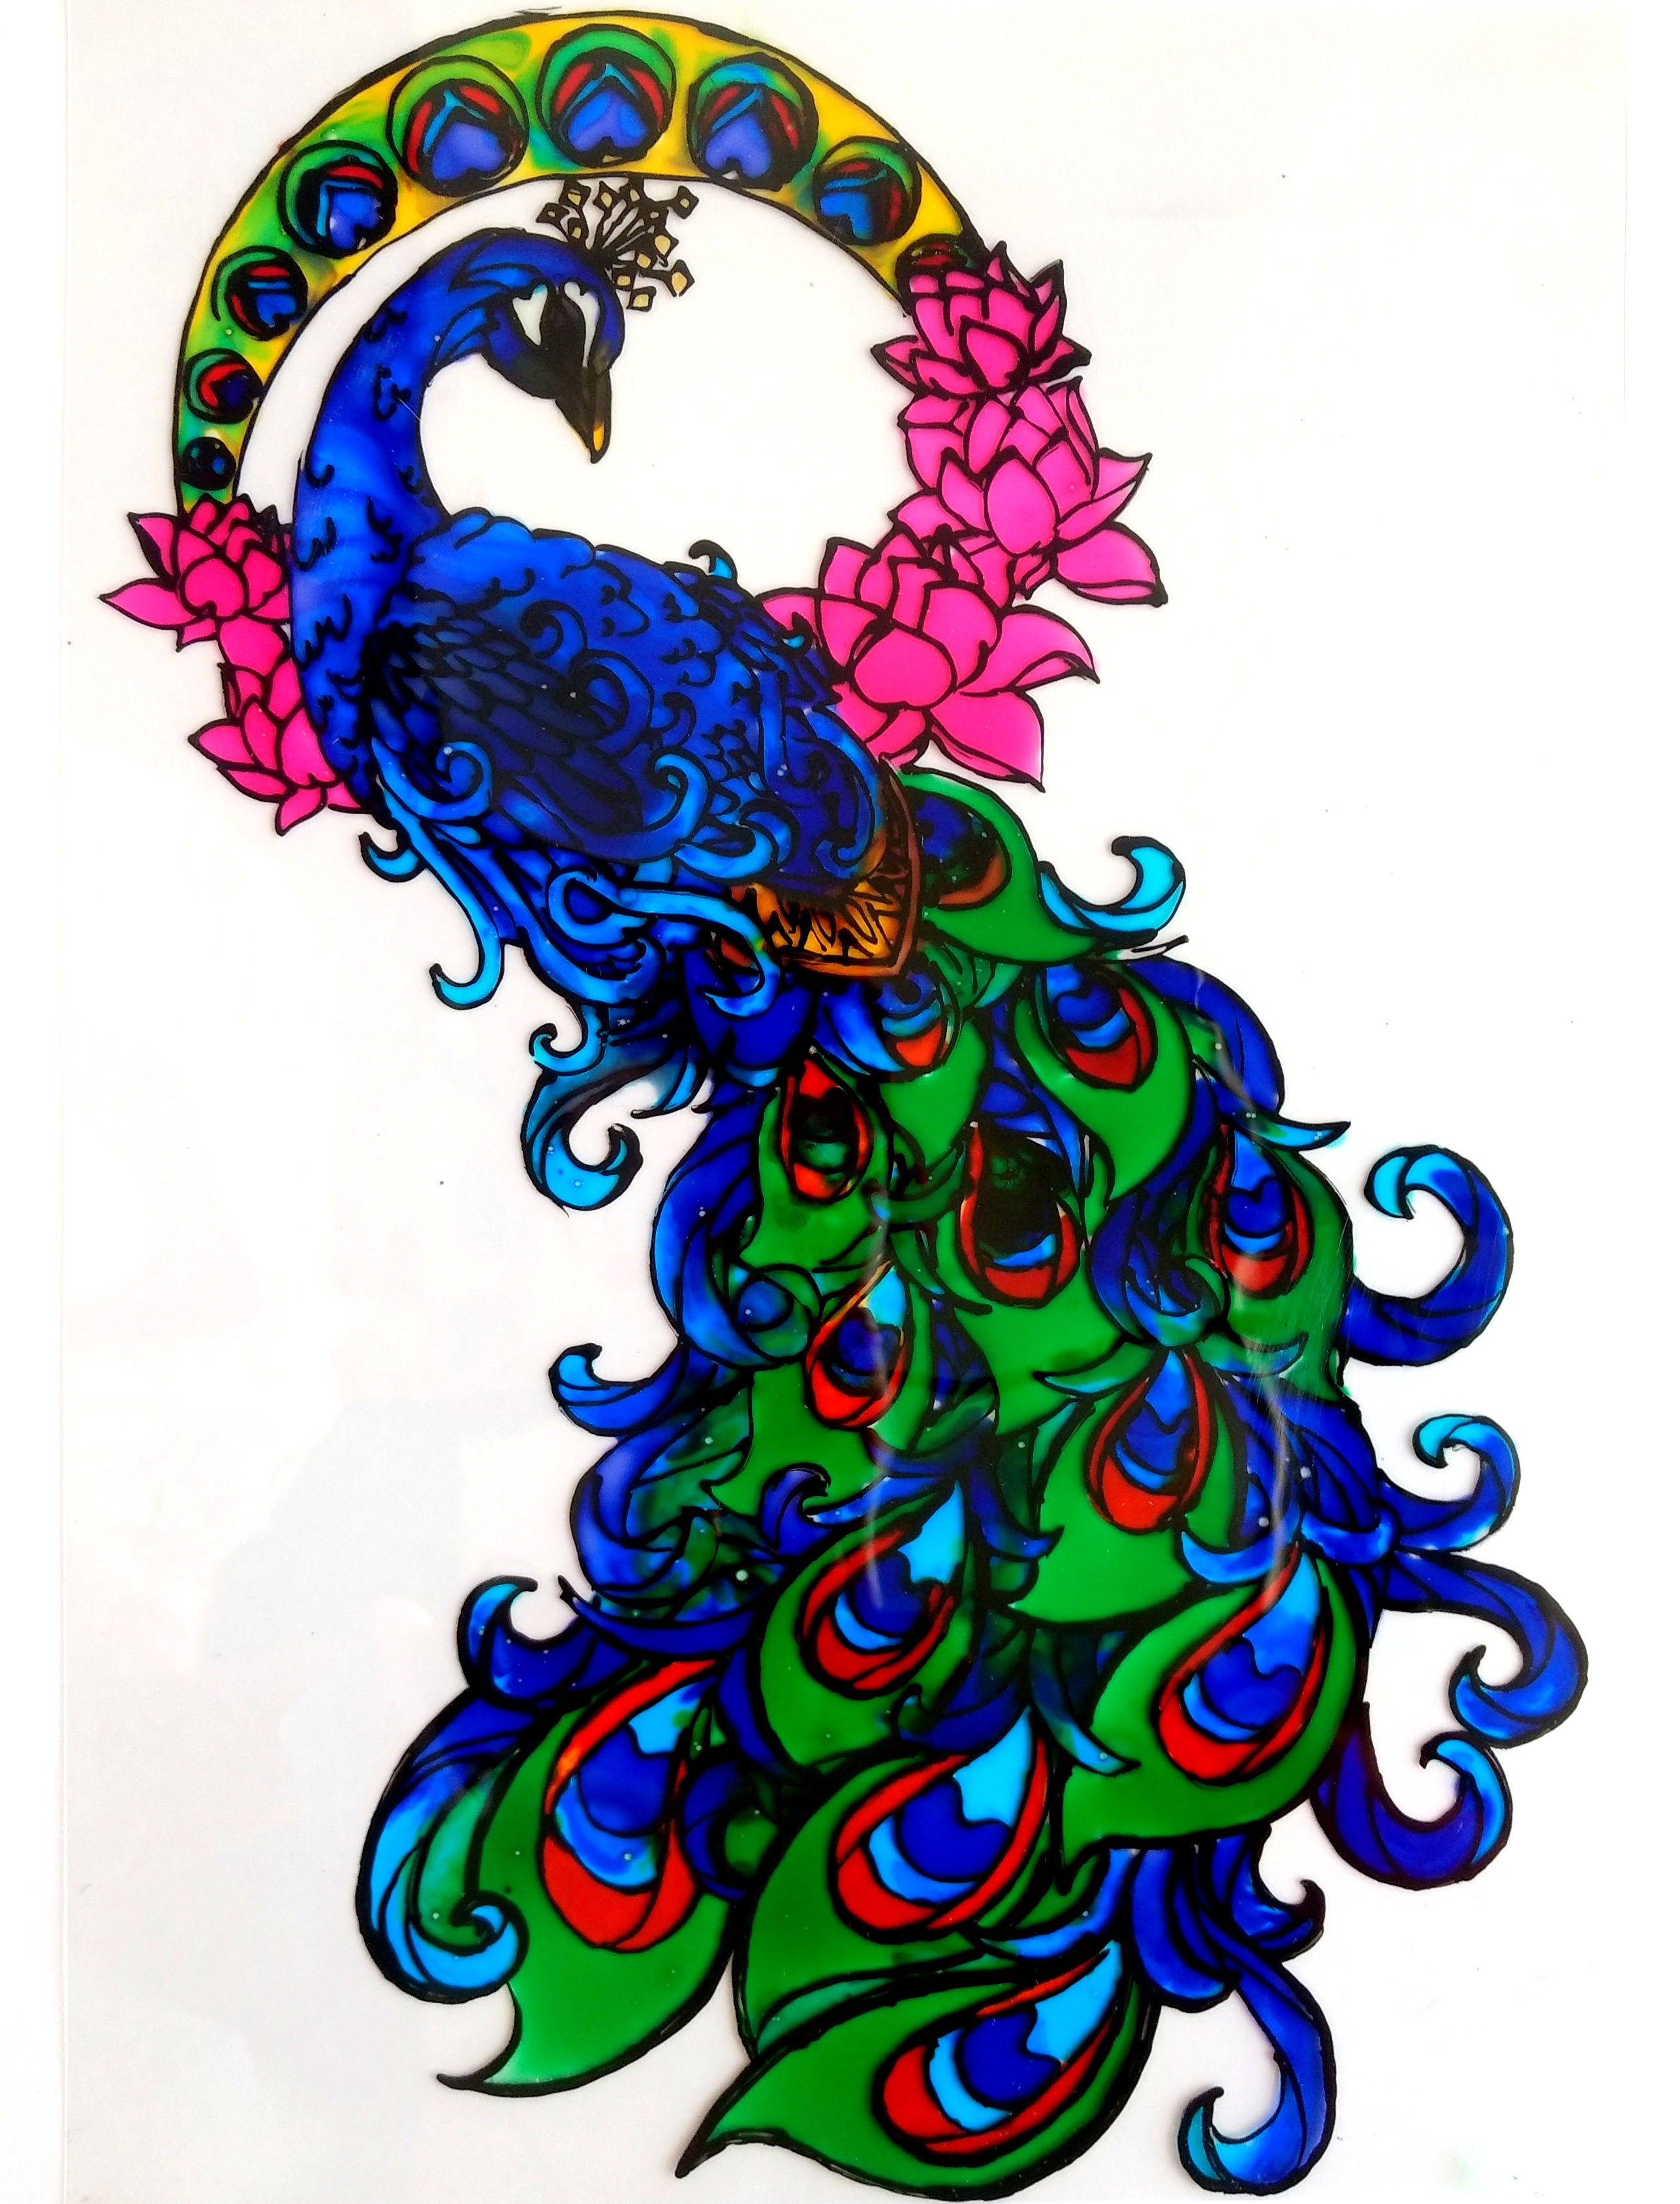 Glass Painting Of A Peacock Creative Art